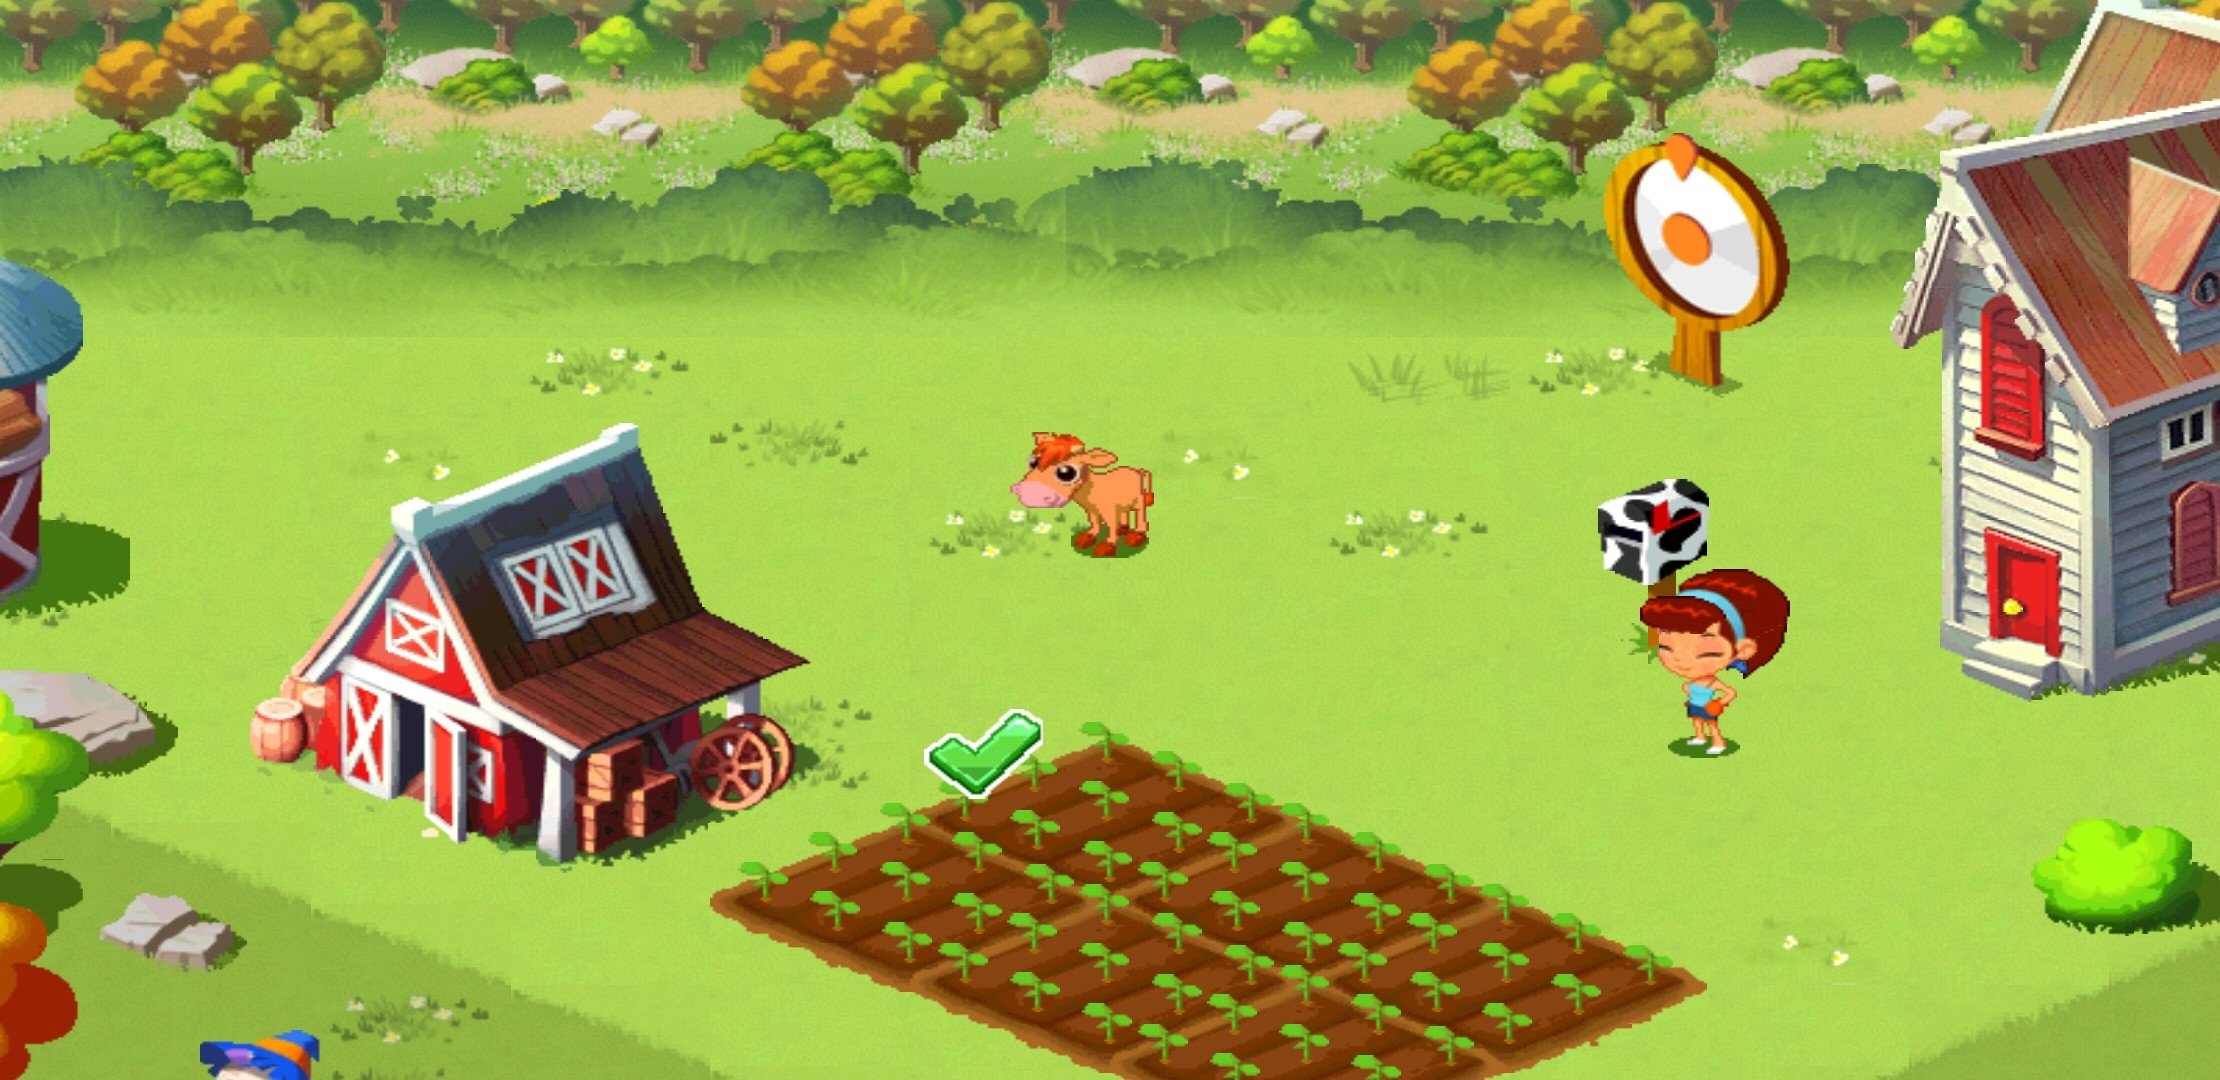 Green Farm 3 4 3 4 - Download for Android APK Free